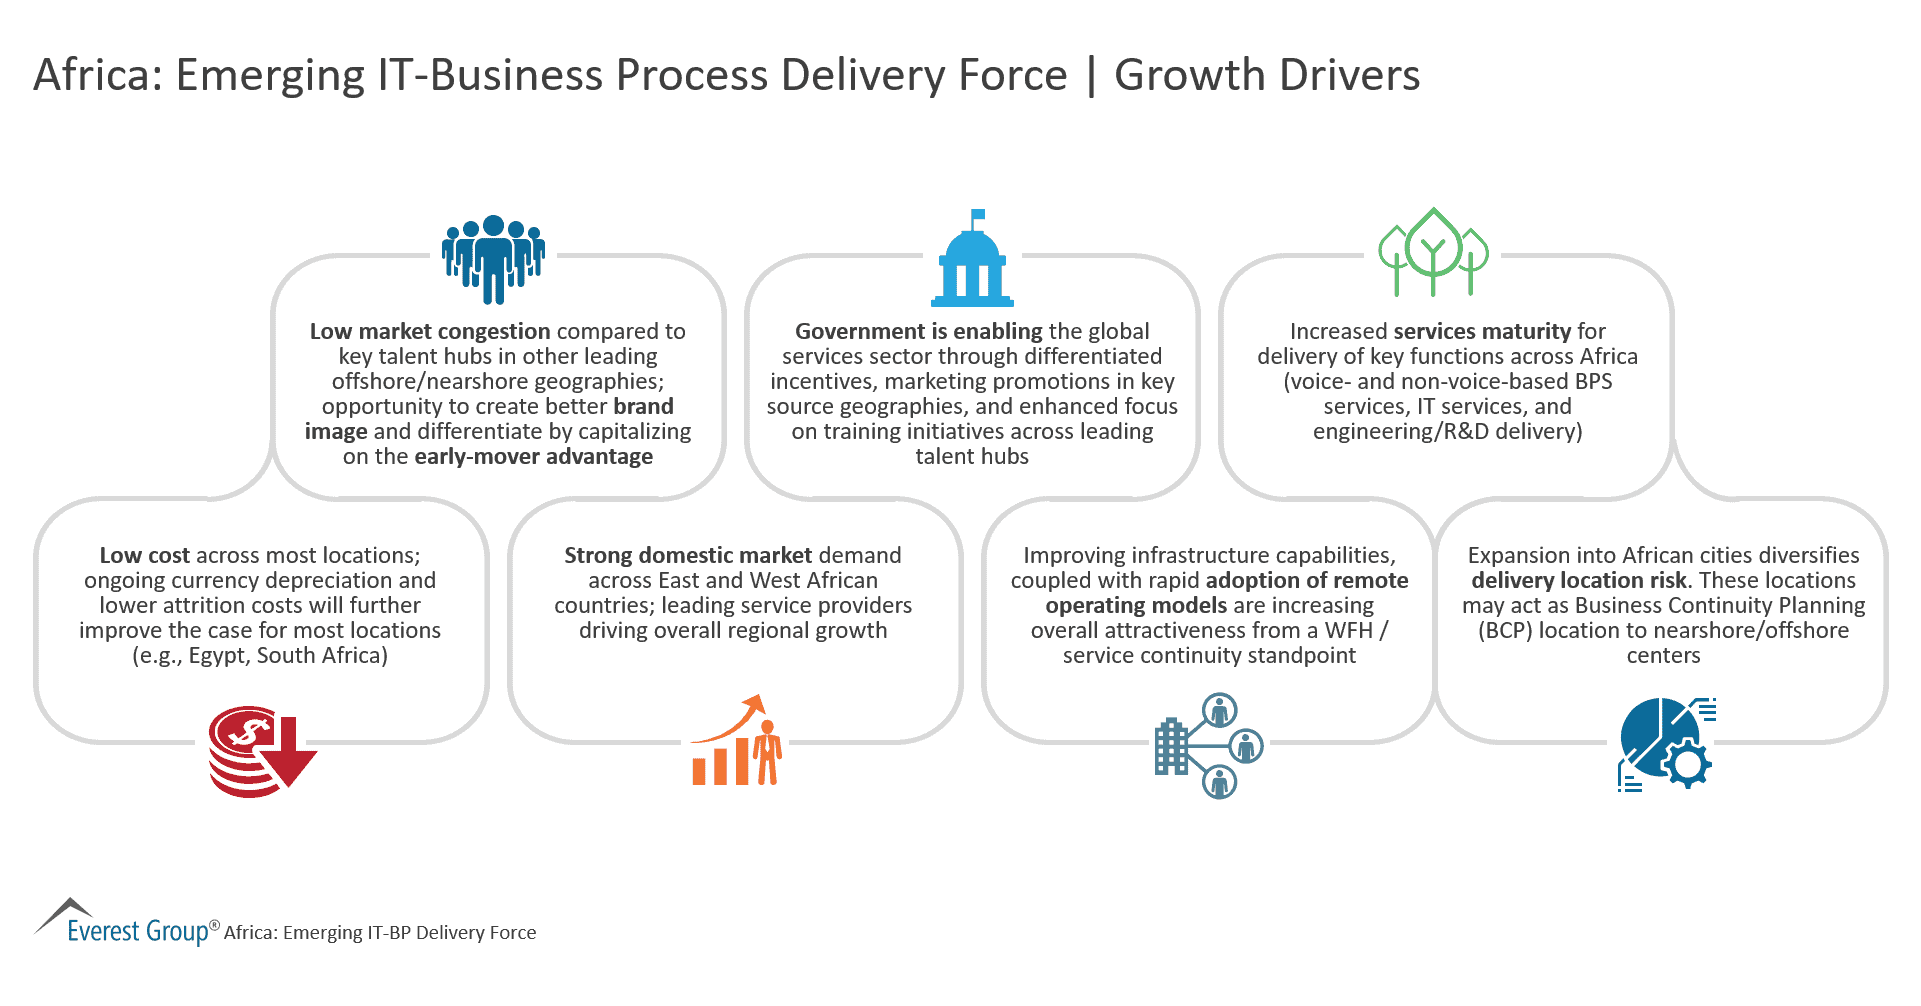 Africa Emerging IT-Business Process Delivery Force - Growth Drivers